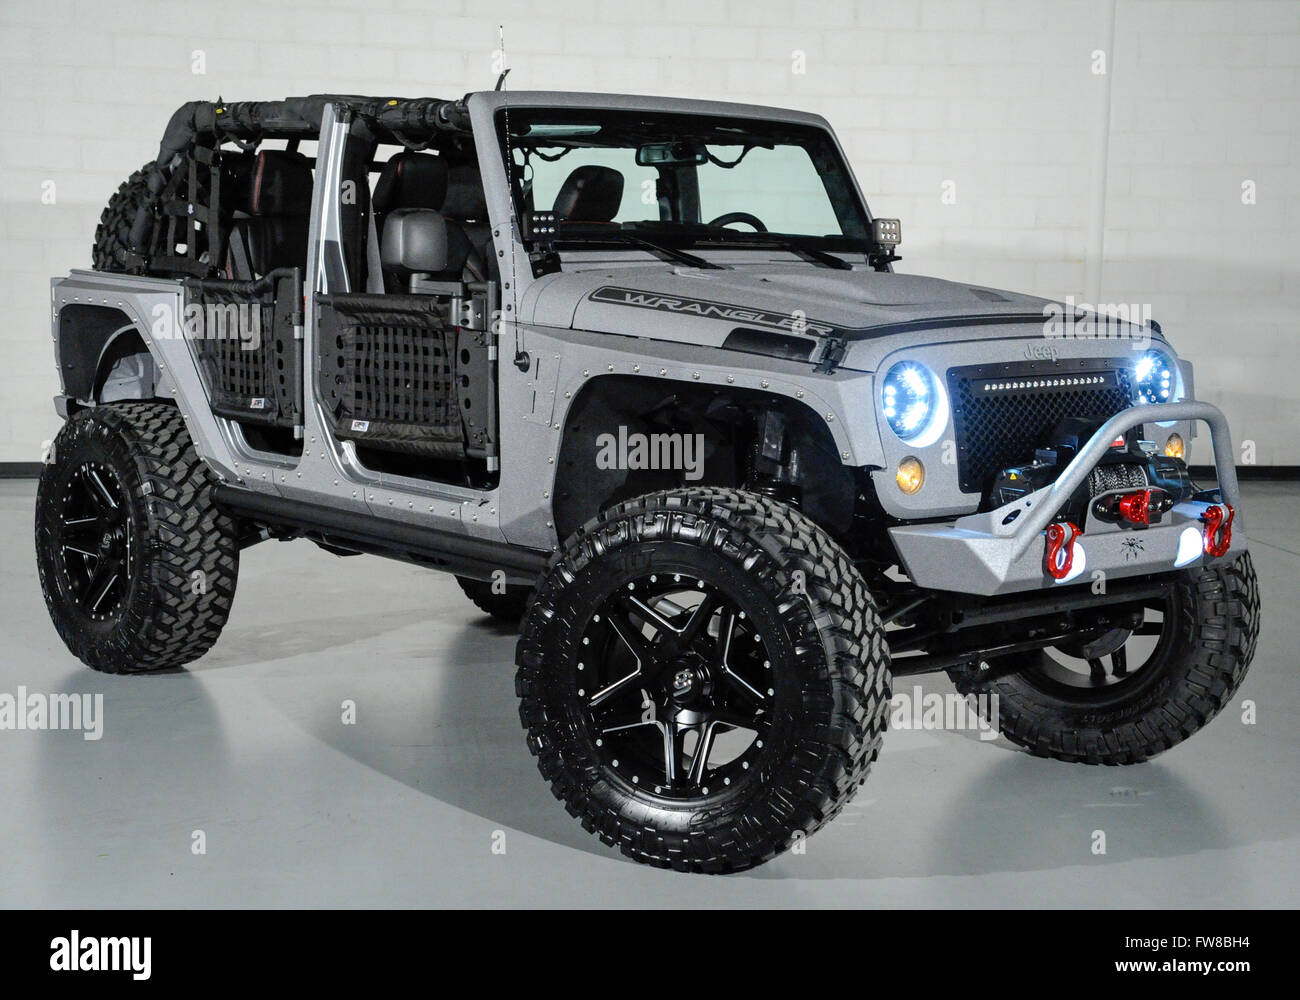 april 1 2016 custom jeep wrangler with custom doors and leather stock photo 101602960 alamy. Black Bedroom Furniture Sets. Home Design Ideas